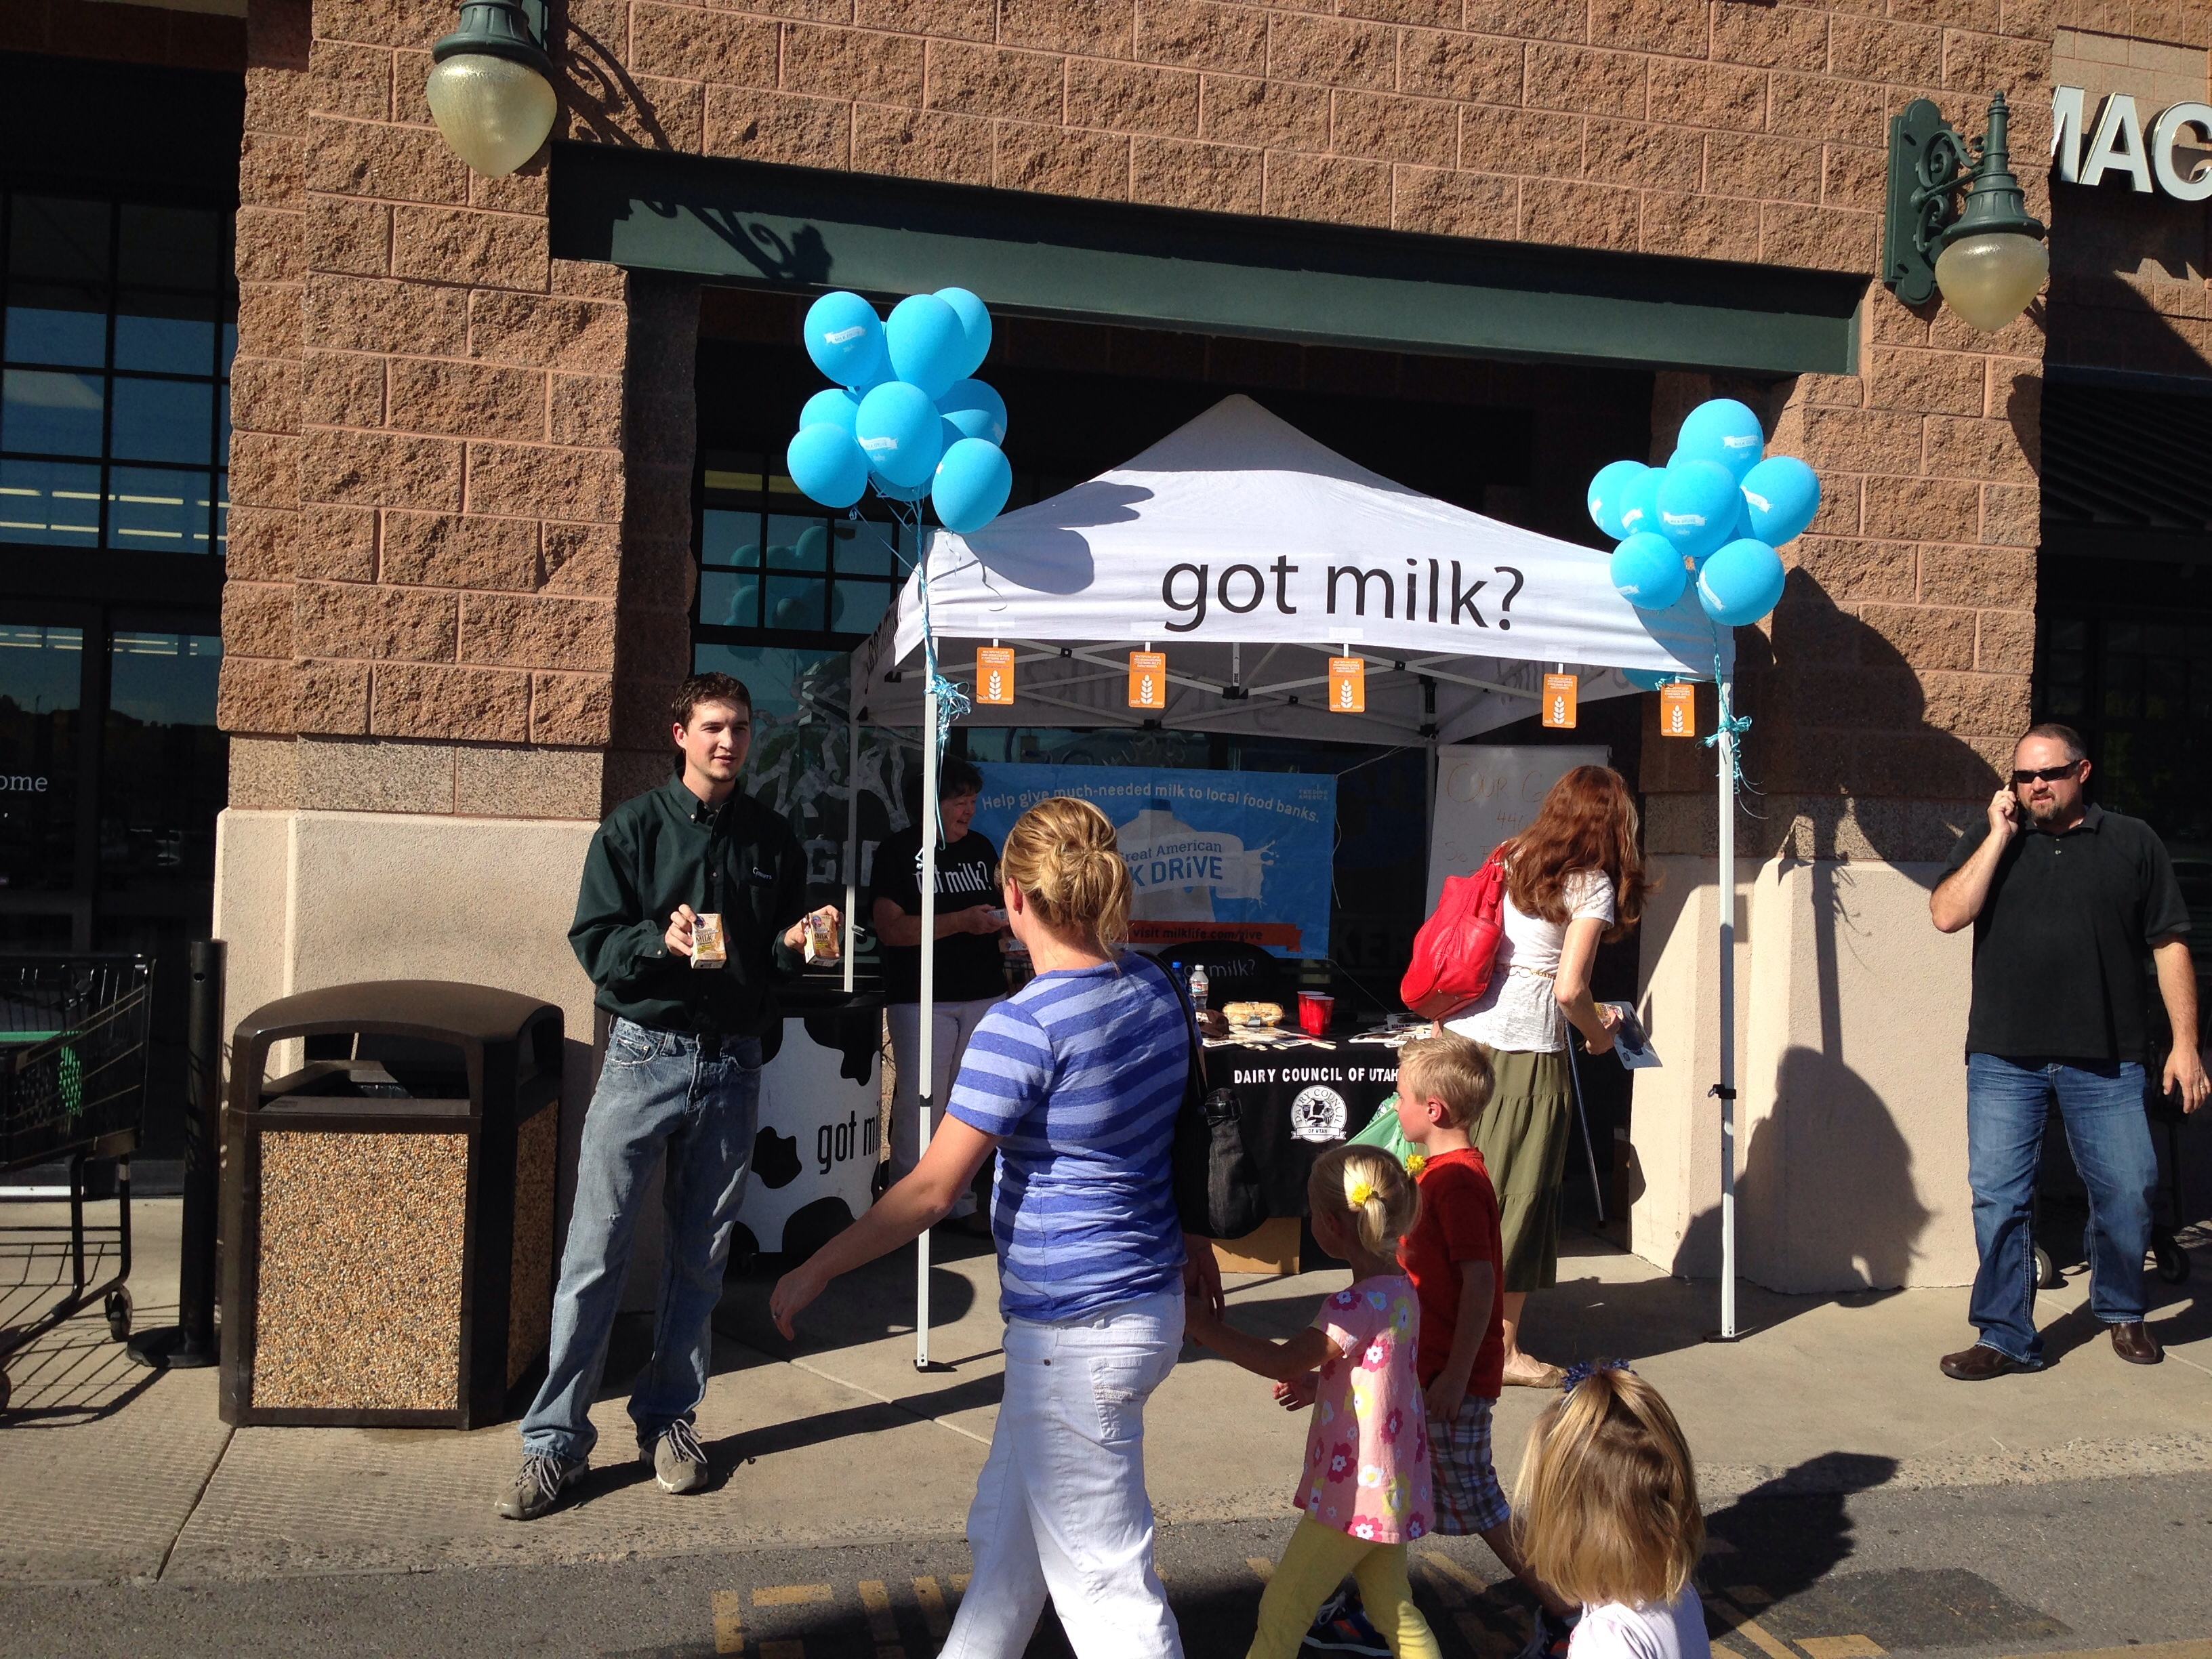 Gossner Foods helps pass out free chocolate milk at a Lee's Marketplace store in Logan, UT